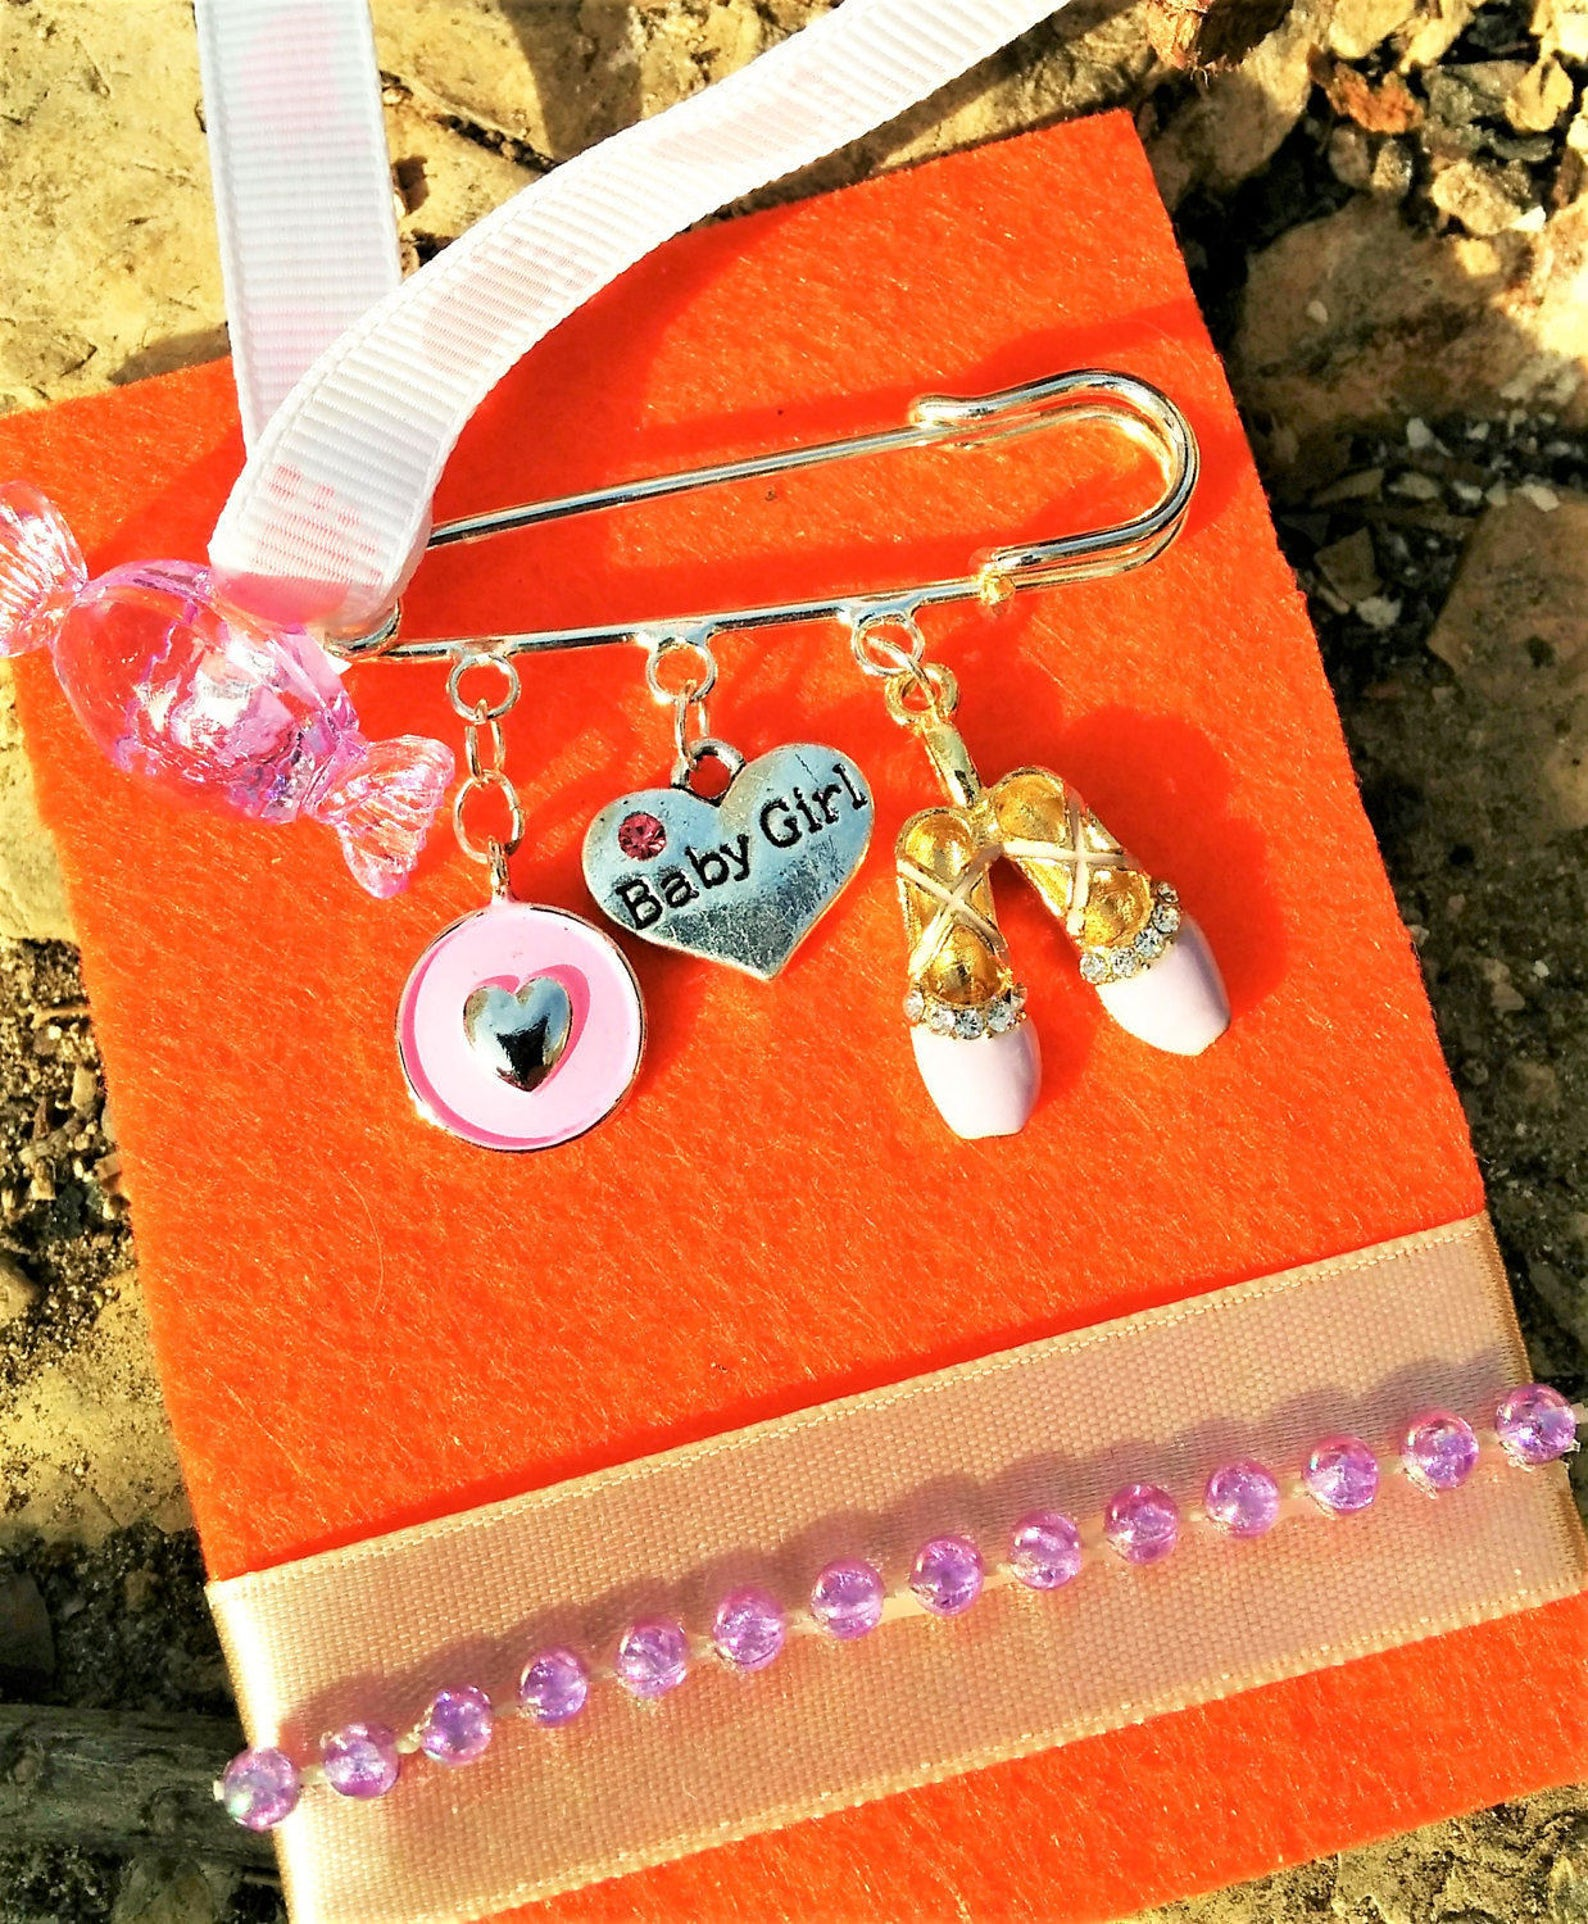 newborn/ baby girl/ new mom/ safety pin/ gift/ baptism/ baby shower/ ballet shoes/ evil eye/ charms/ heart/ candy bead/ footstep